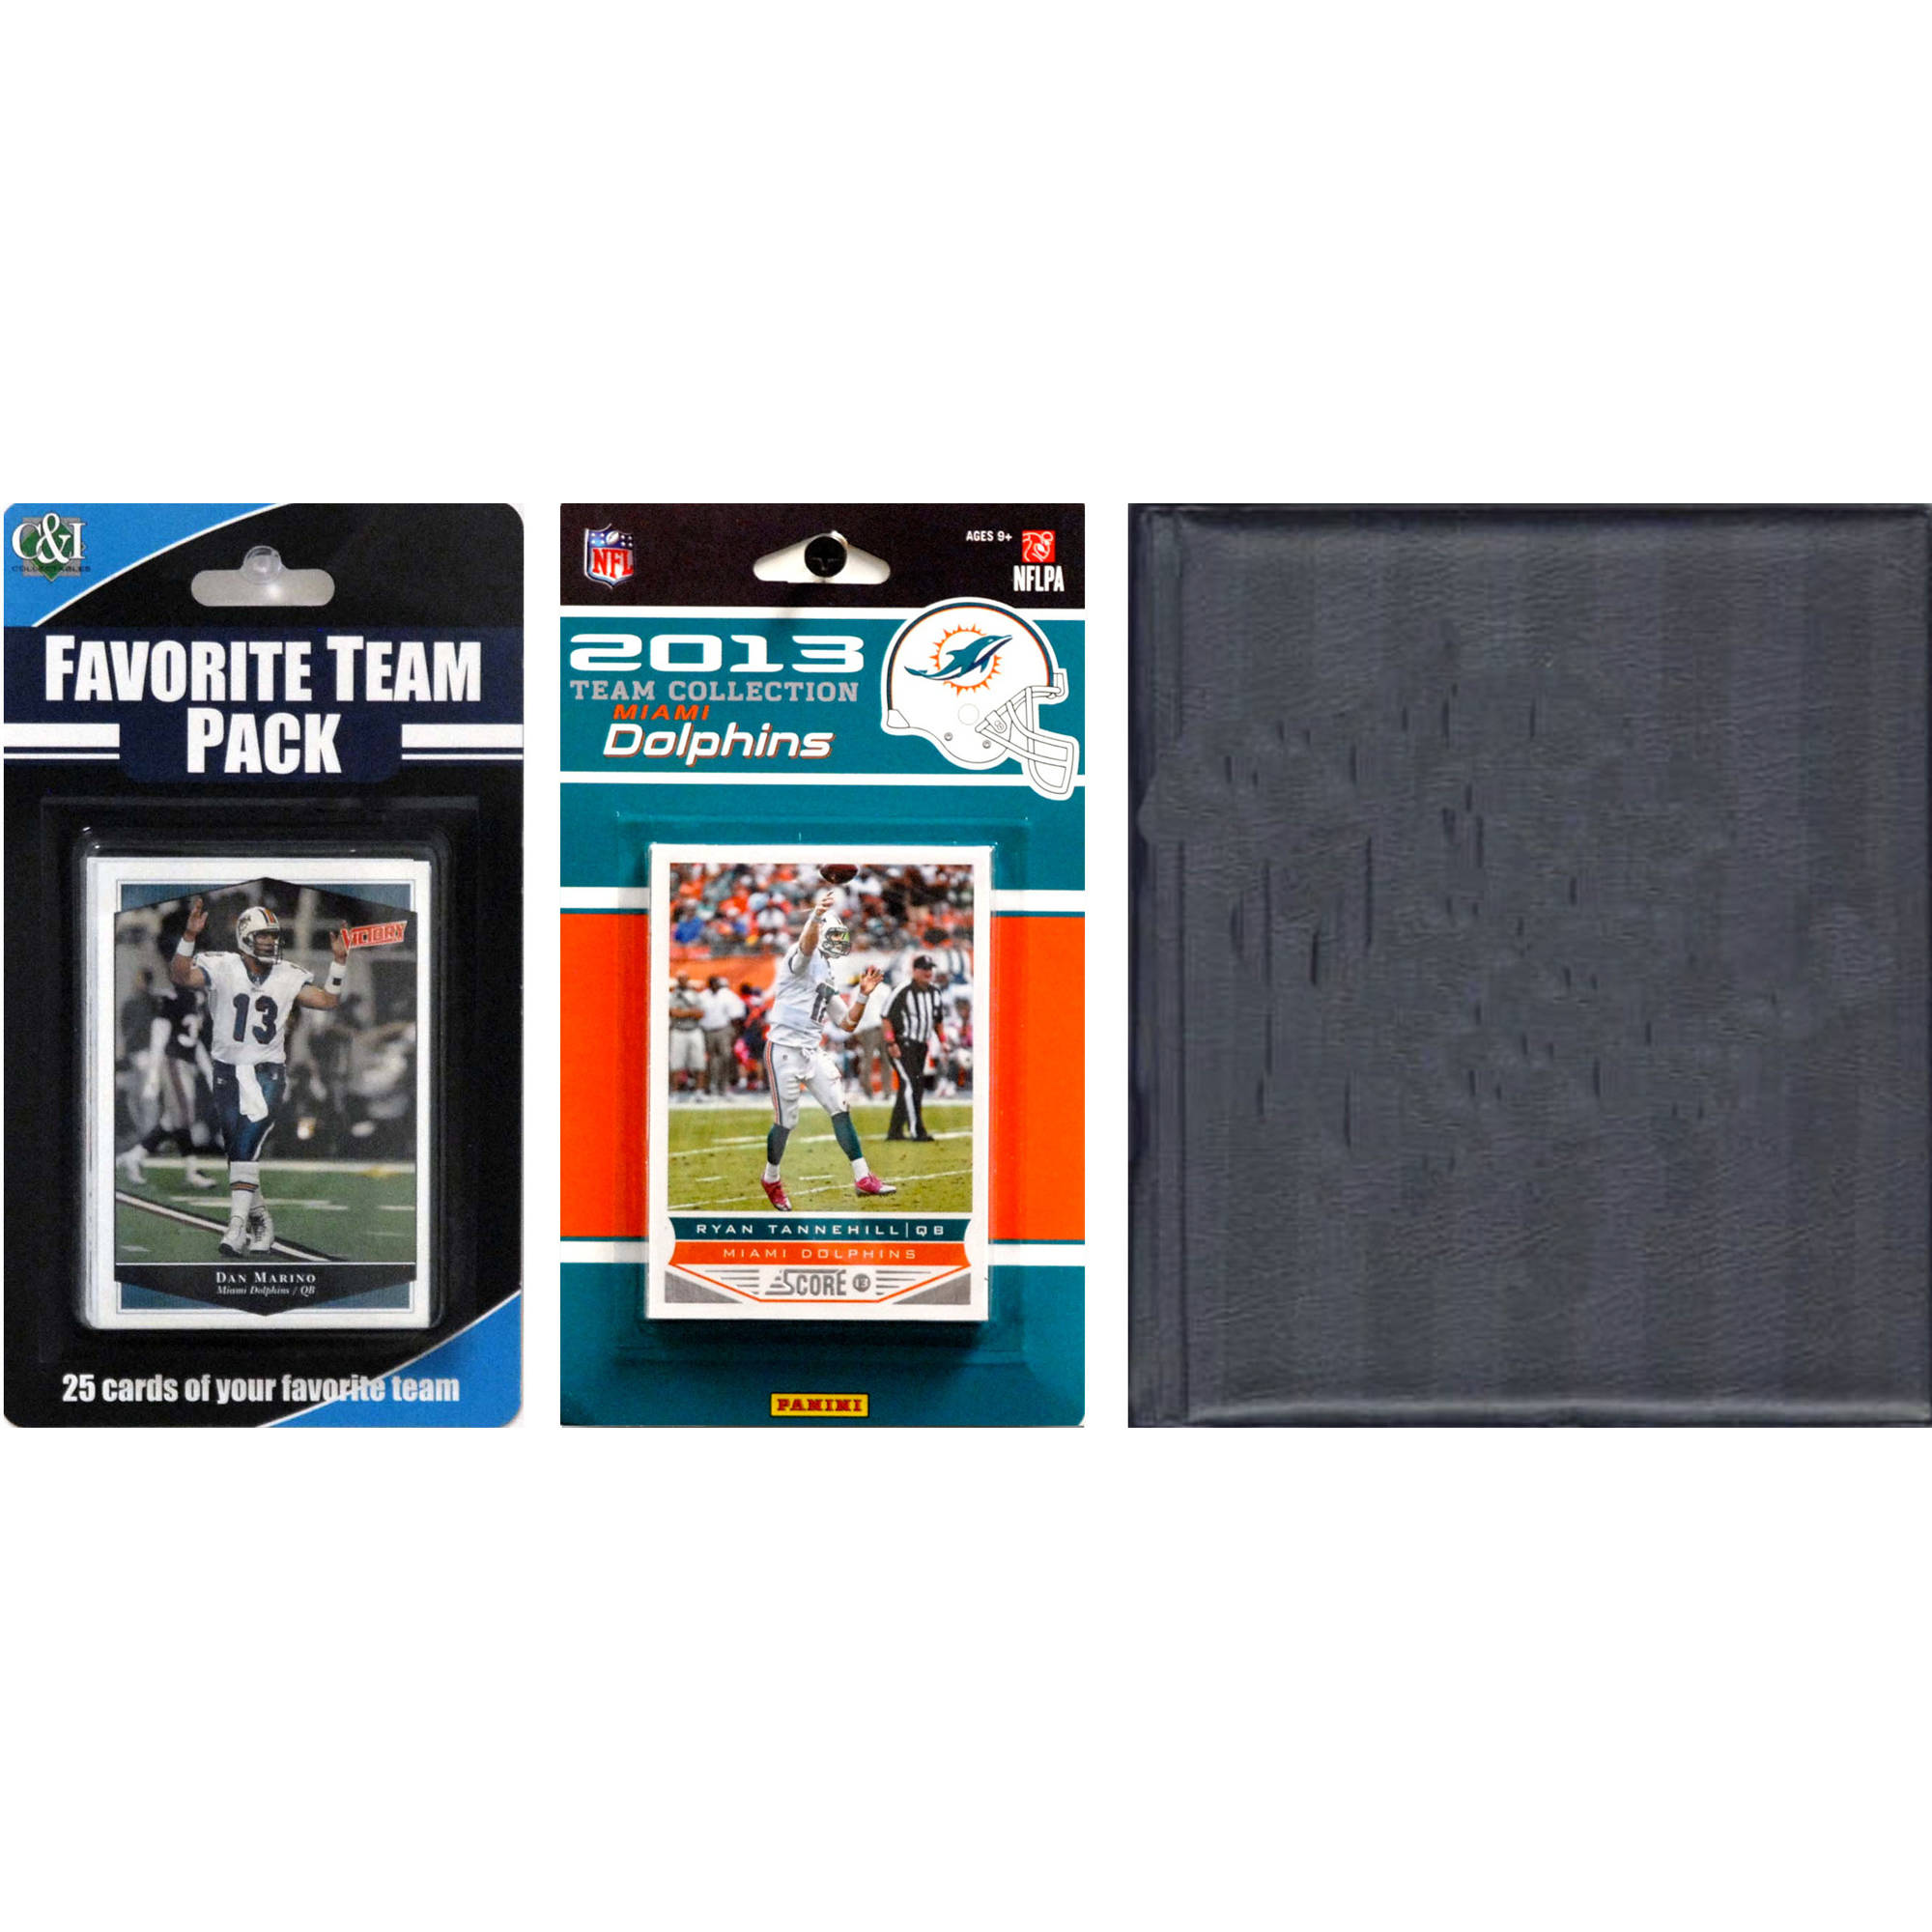 C&I Collectables NFL Miami Dolphins Licensed 2013 Score Team Set and Favorite Player Trading Card Pack Plus Storage Album